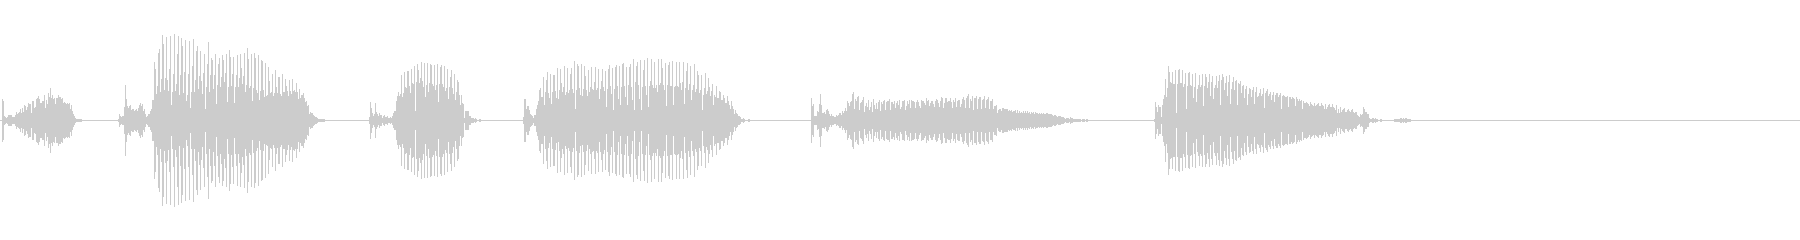 Easy to use!'s unreproduced waveform